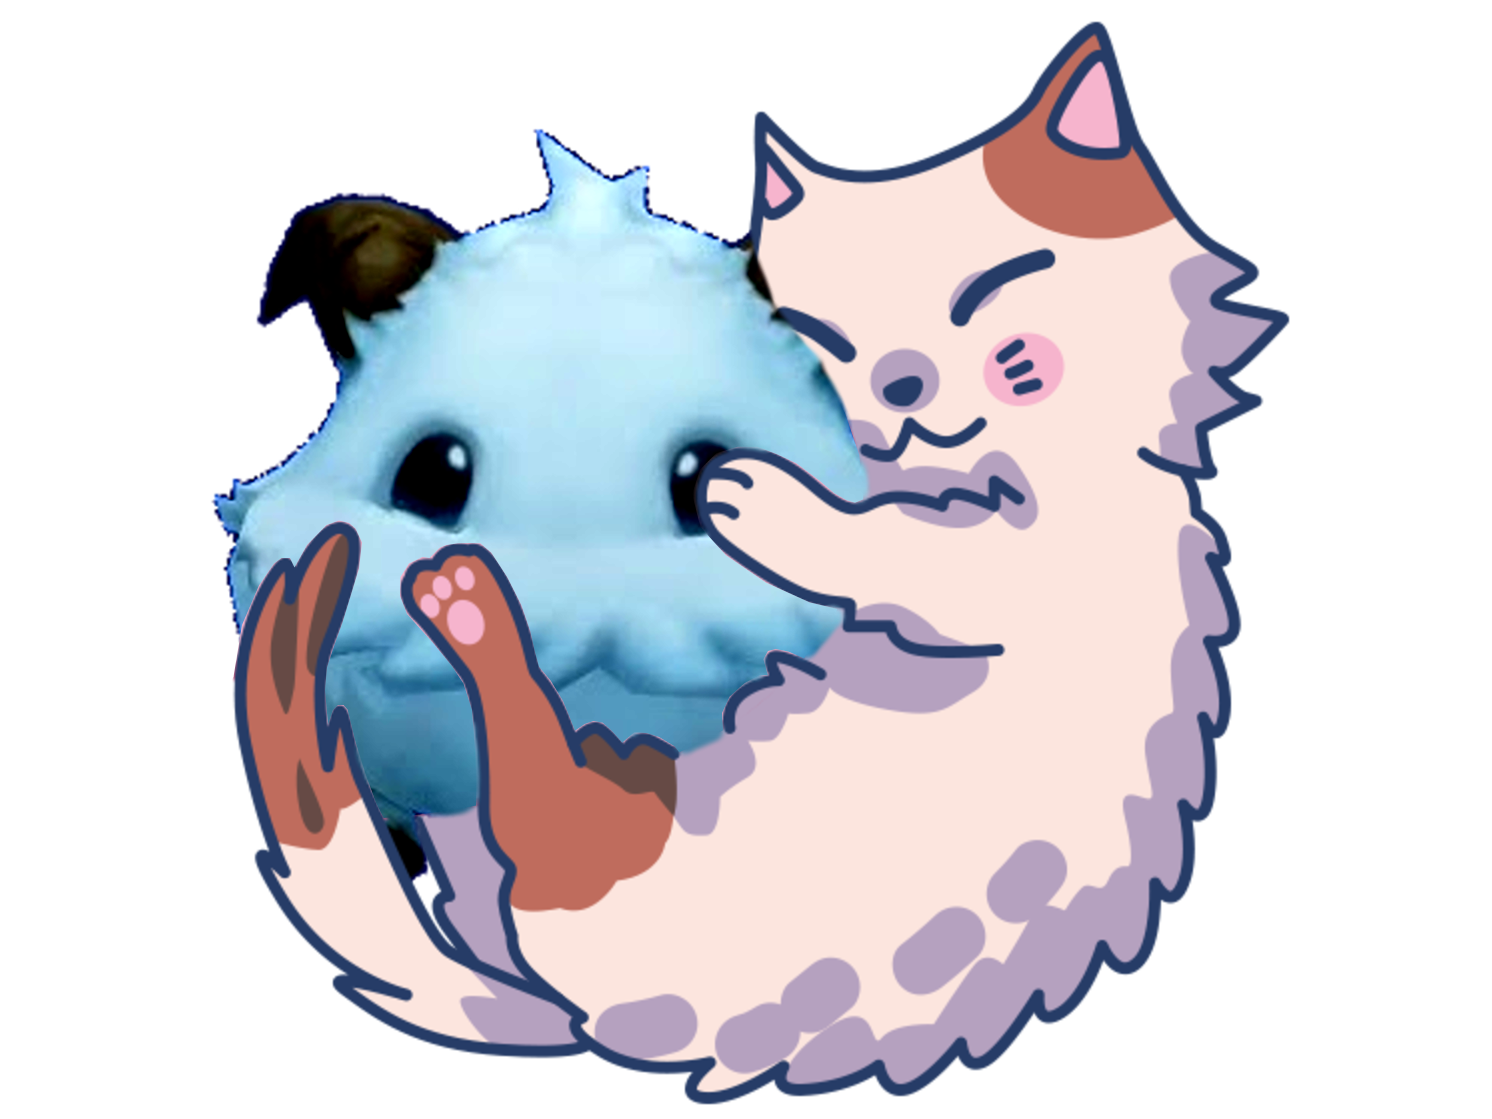 Sticker jvc league of legends lol fluffy chaton felin amour calin hugging bisou poro bebete animal fantastique legende poil fourrure mignon kawaii doigt rire drole tinnova